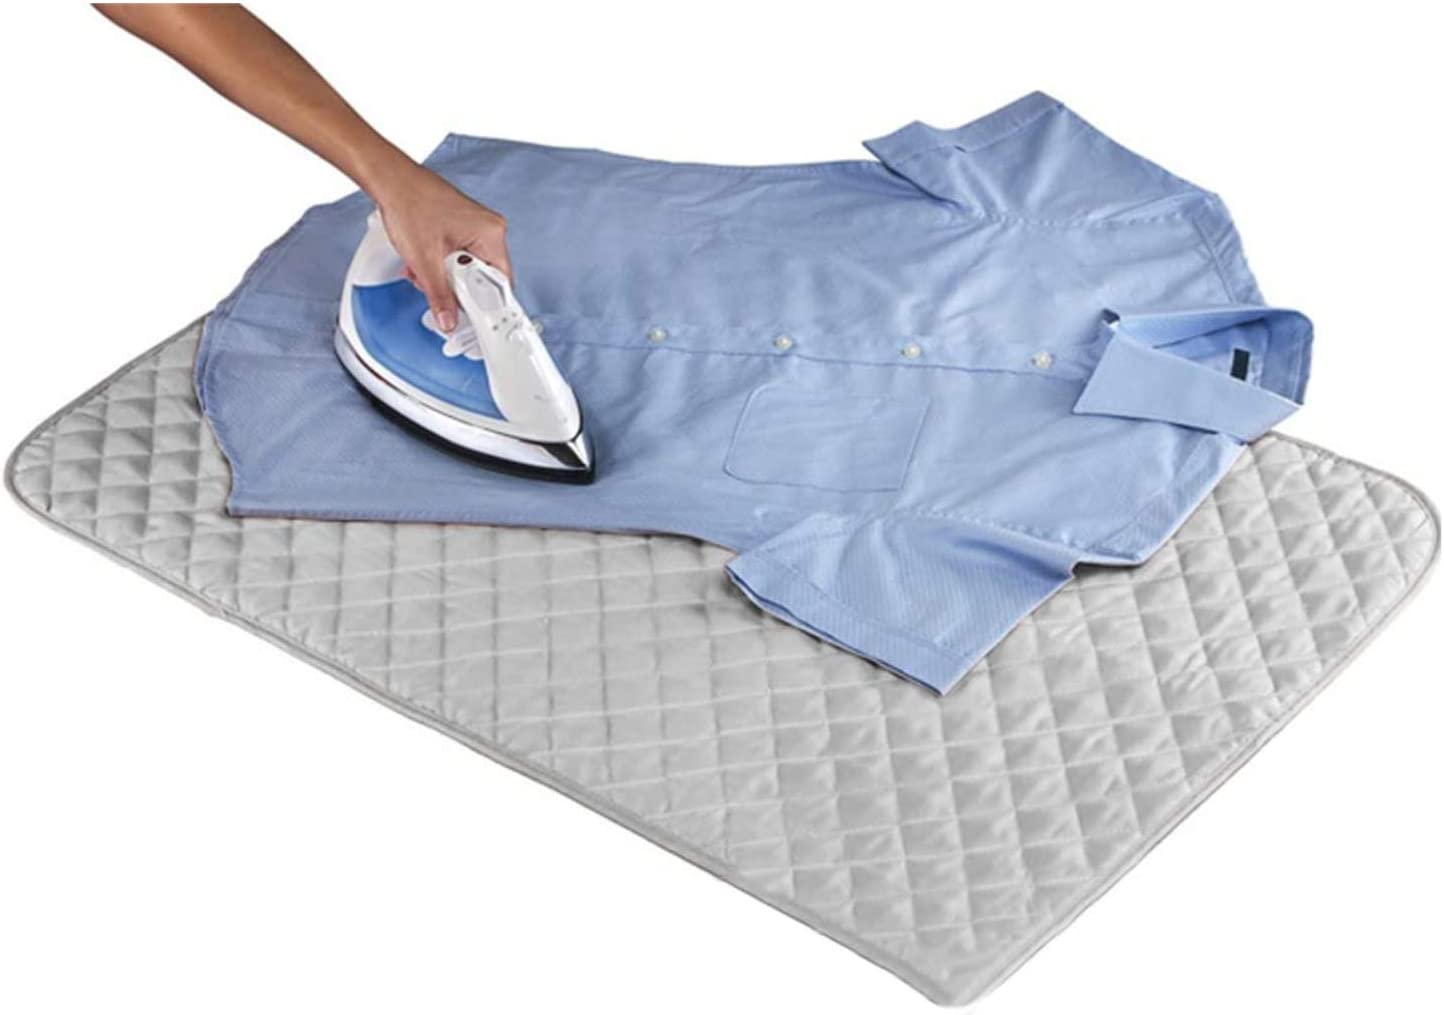 Easy To Fit Thick Double Layer Backing With Heat Reflective Properties To Help Make Ironing Easier Elasticated Ironing Board Covers Grey Squares - Elasticated - 120 x 40cm Cover